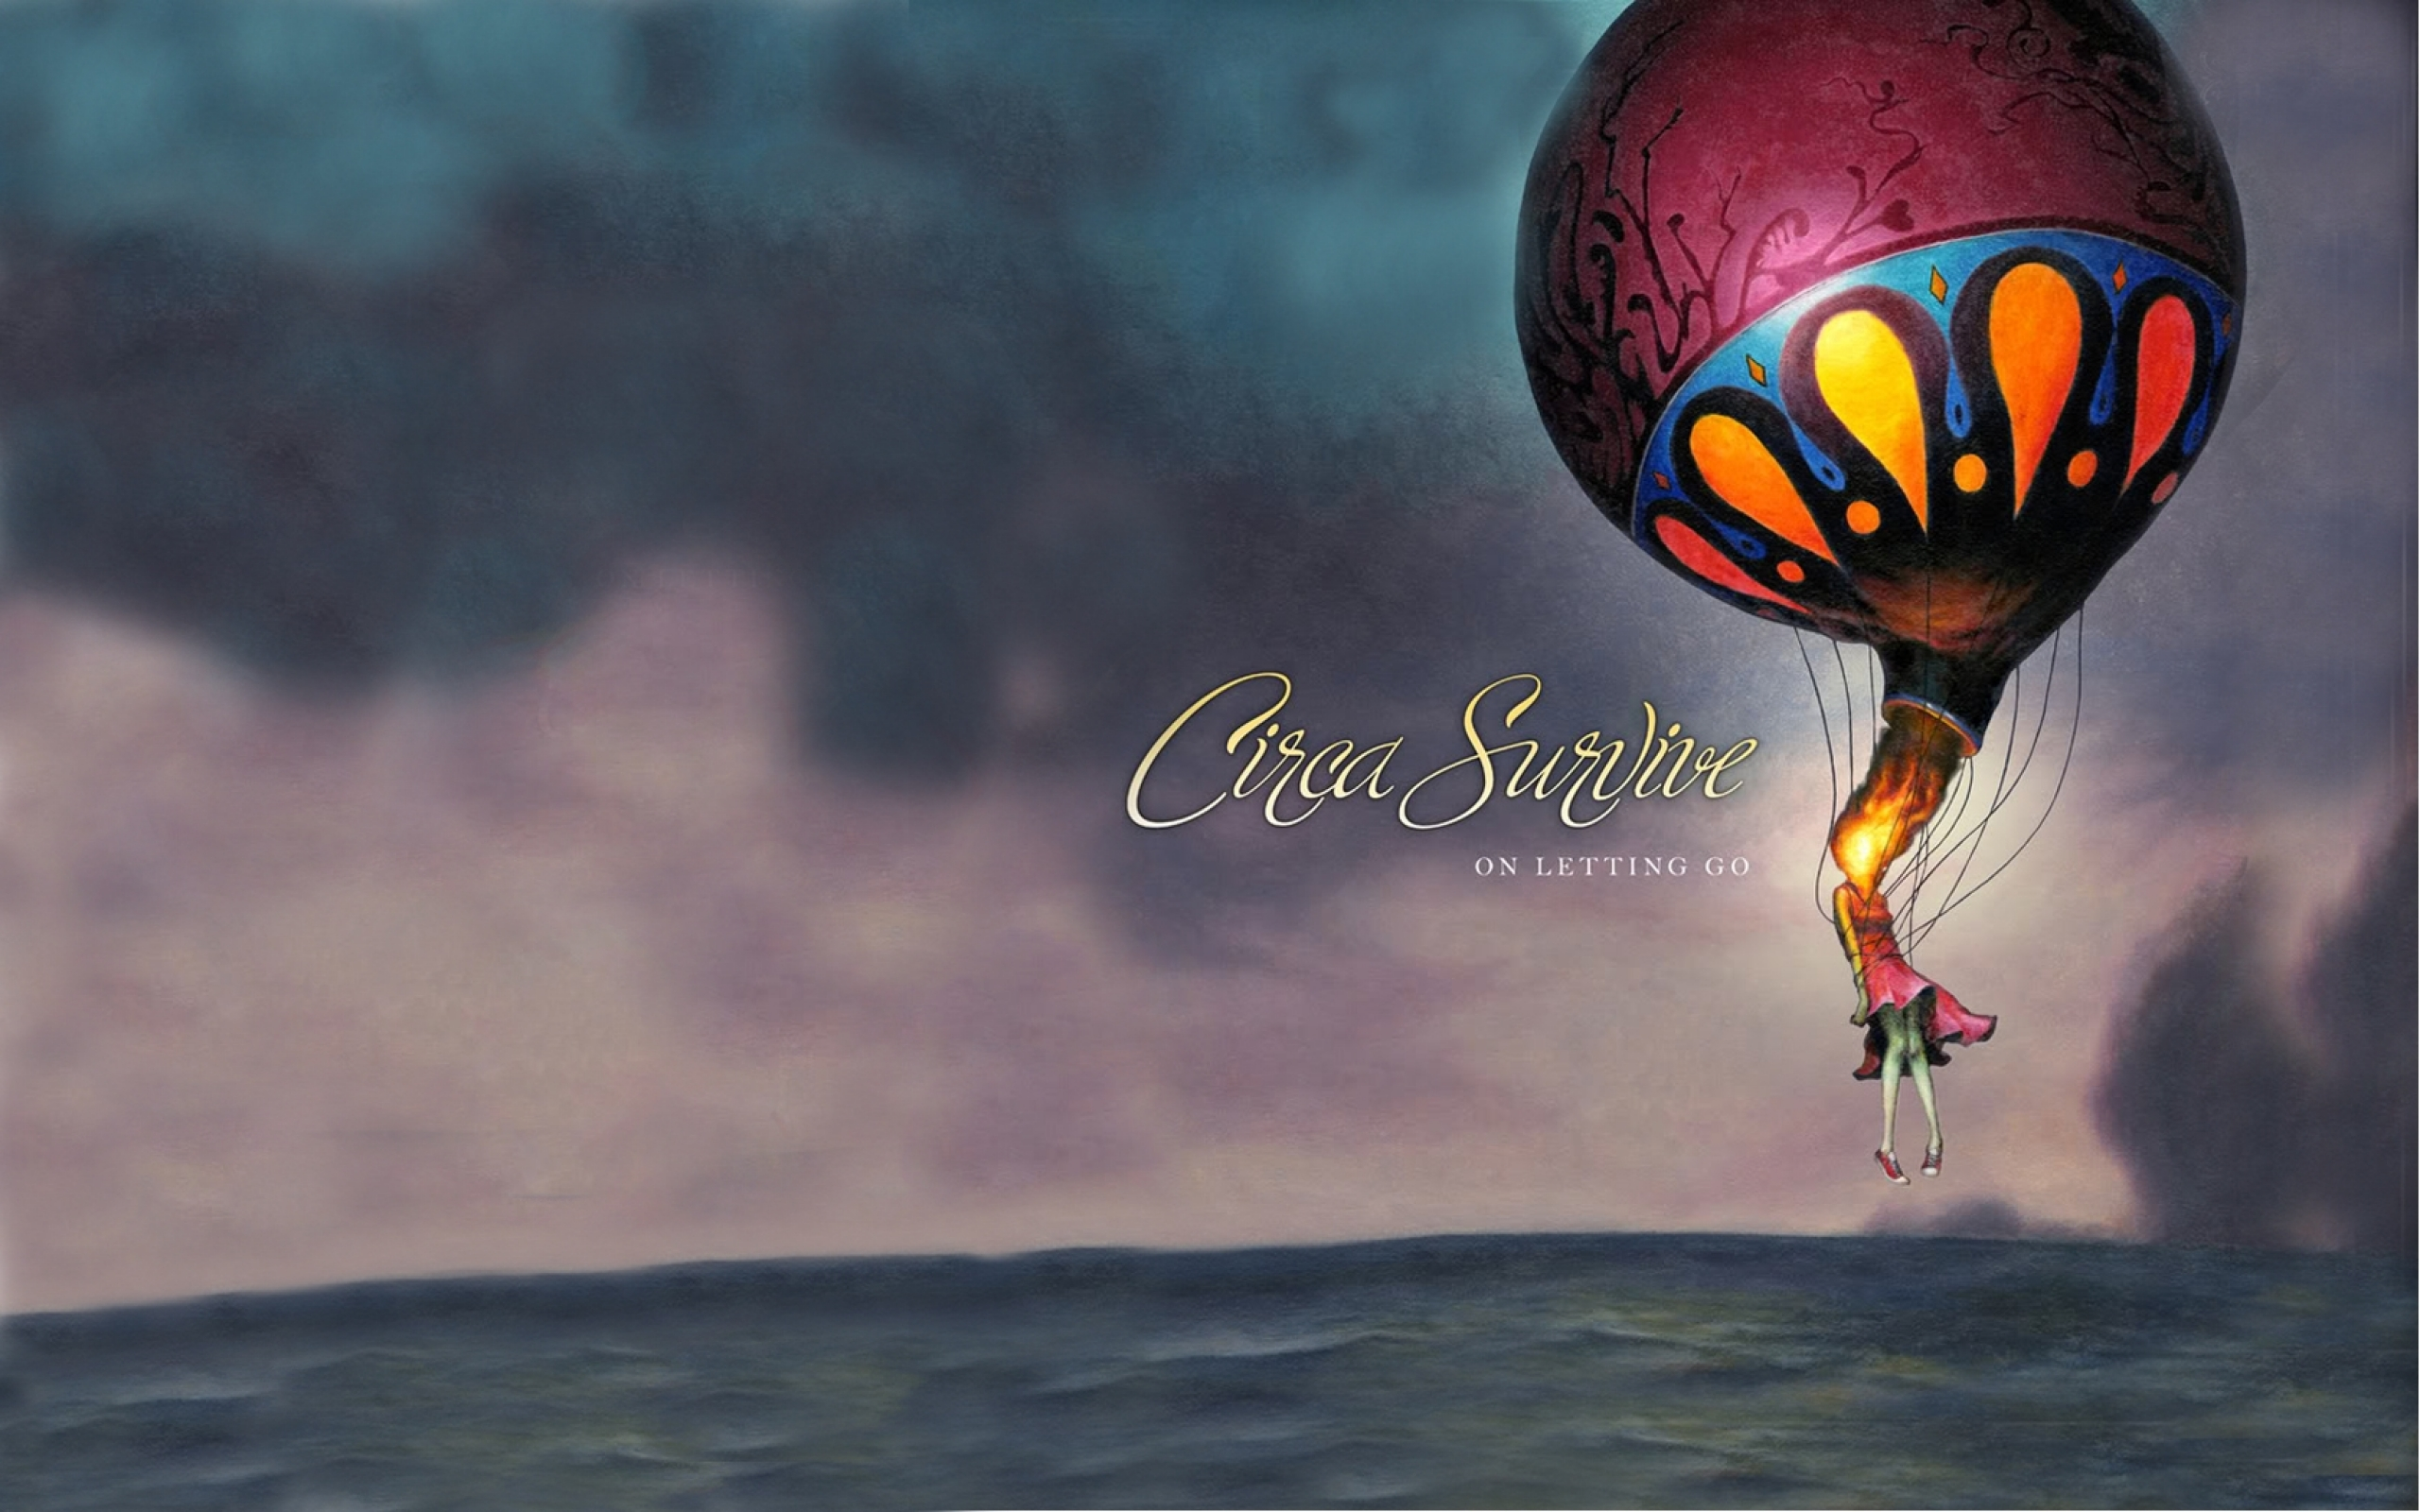 Circa Survive Announce Ten-Year Tour for Iconic Album, On Letting Go